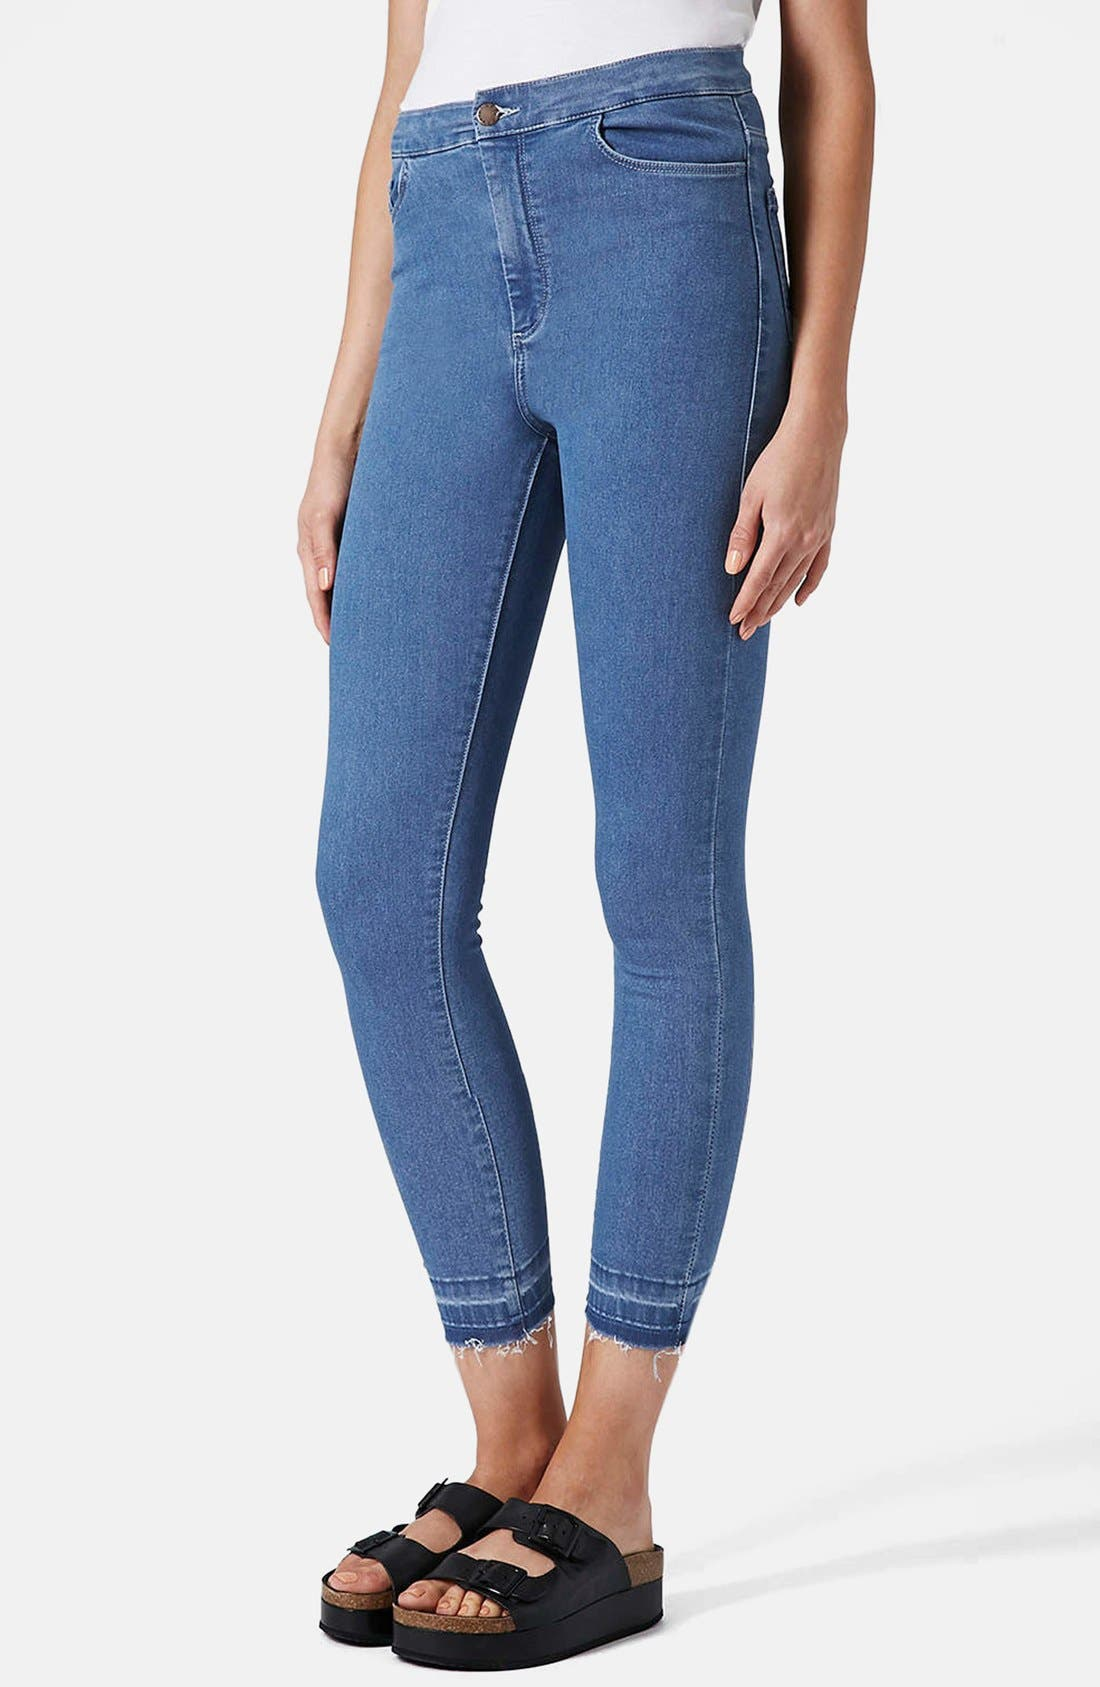 Alternate Image 1 Selected - Topshop Moto 'Joni' High Rise Crop Skinny Jeans (Light)